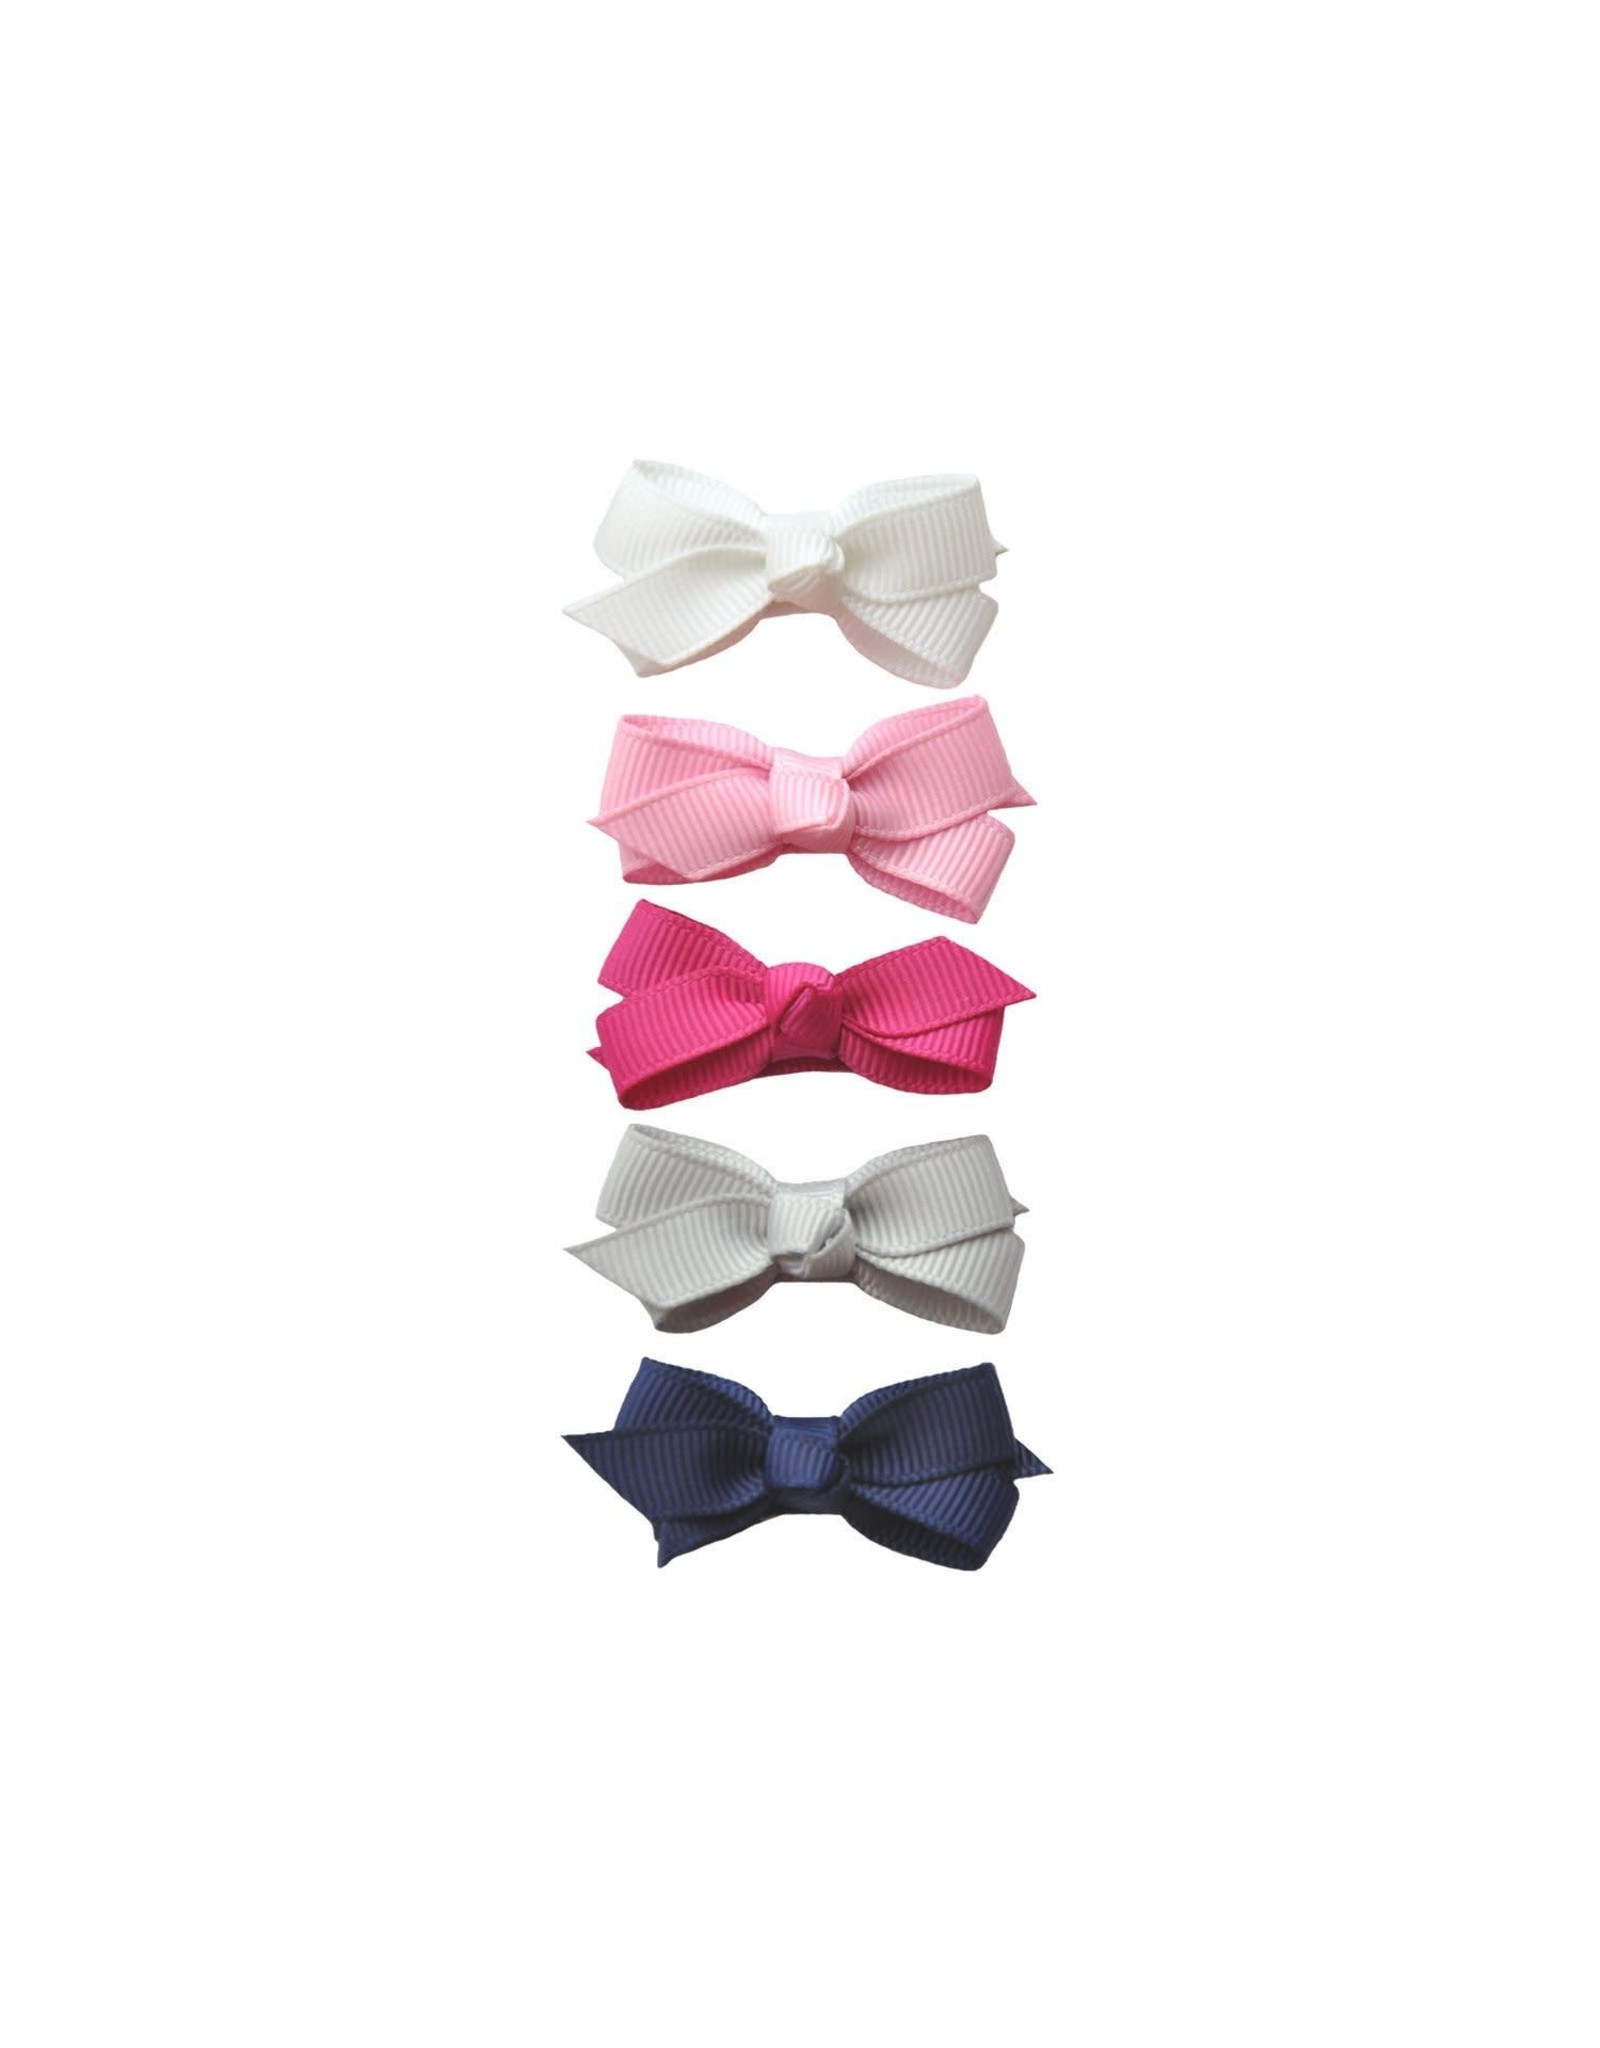 Baby Wisp Baby Wisp Small Snap Chelsea Boutique Bow, 5 pack, Prep Girl